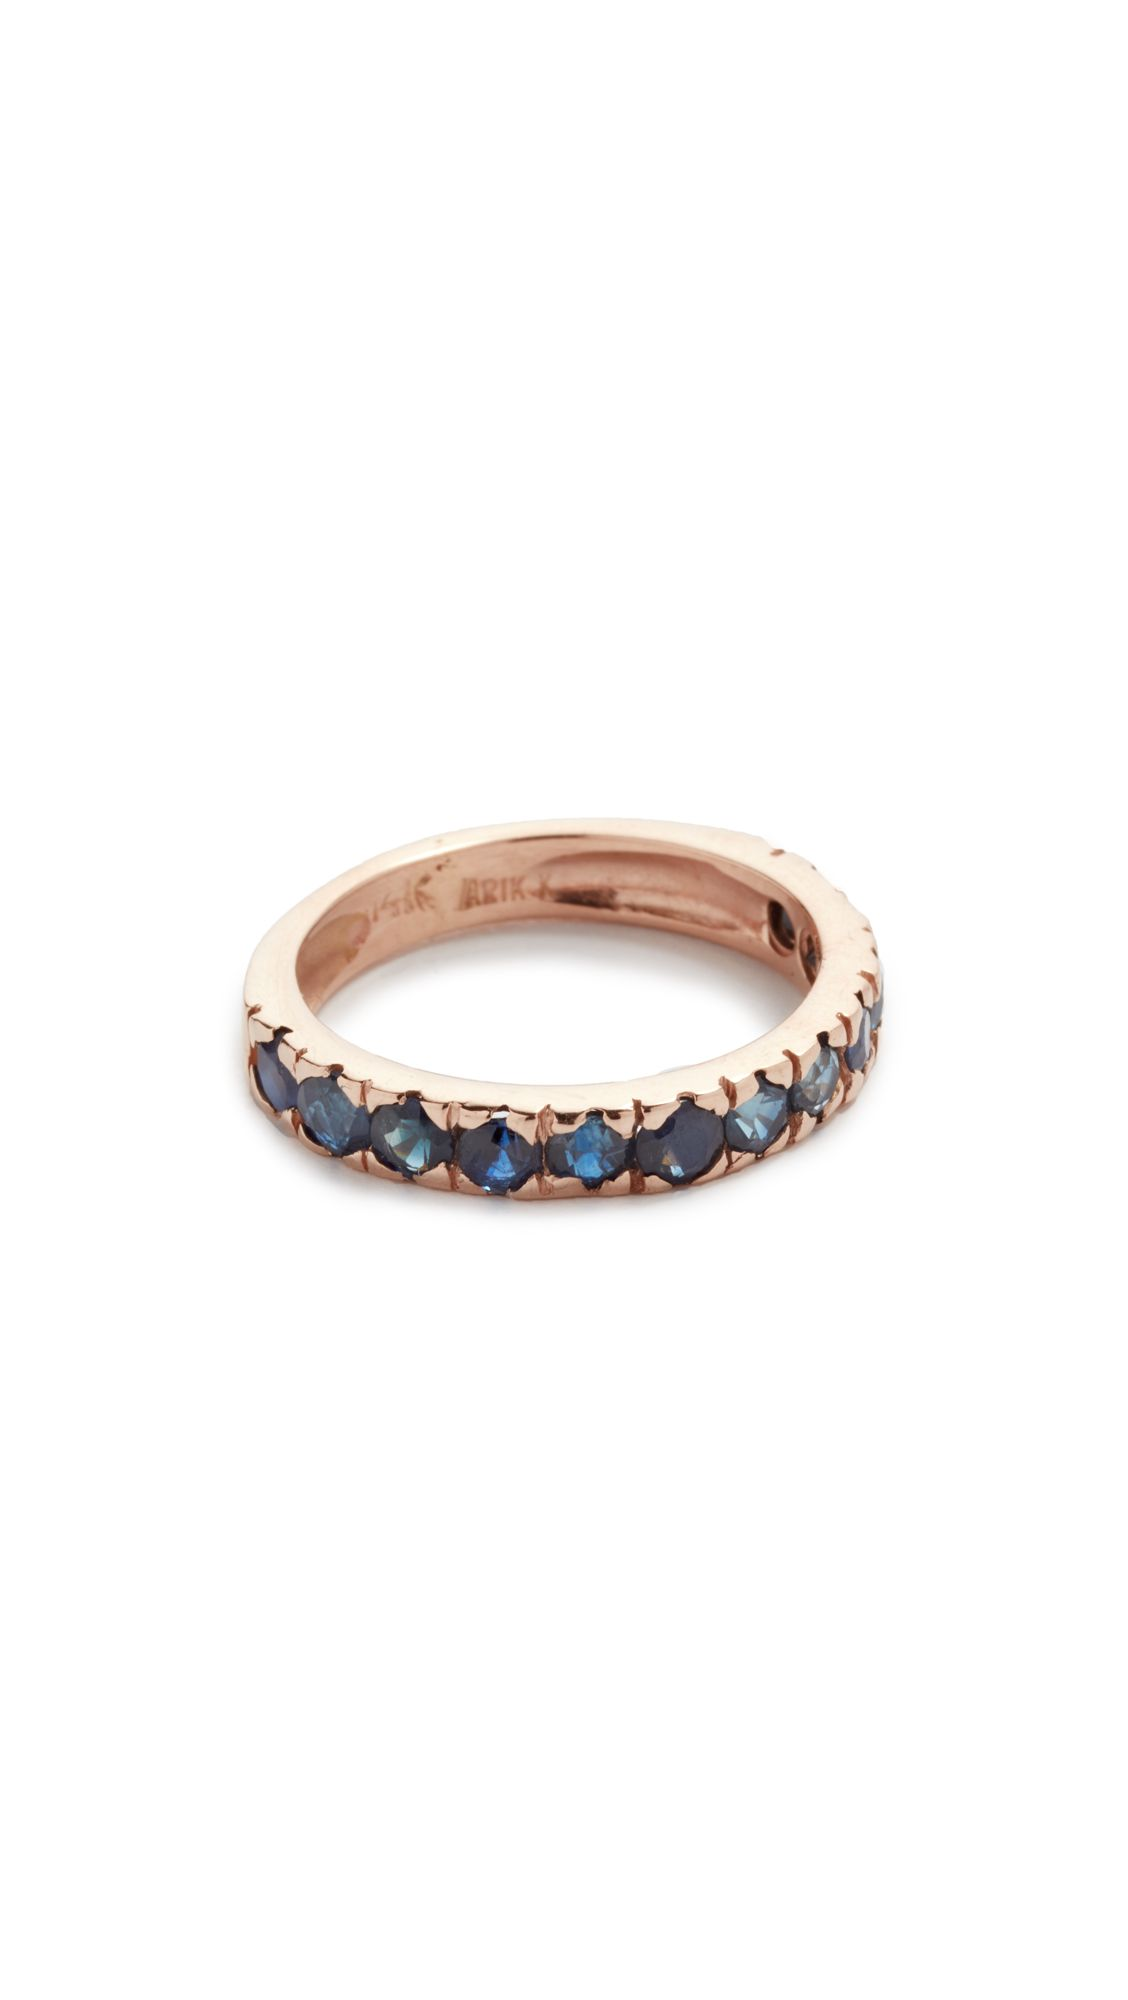 Faceted sapphires stud the textured band on this rose-gold Arik Kastan stacking ring.